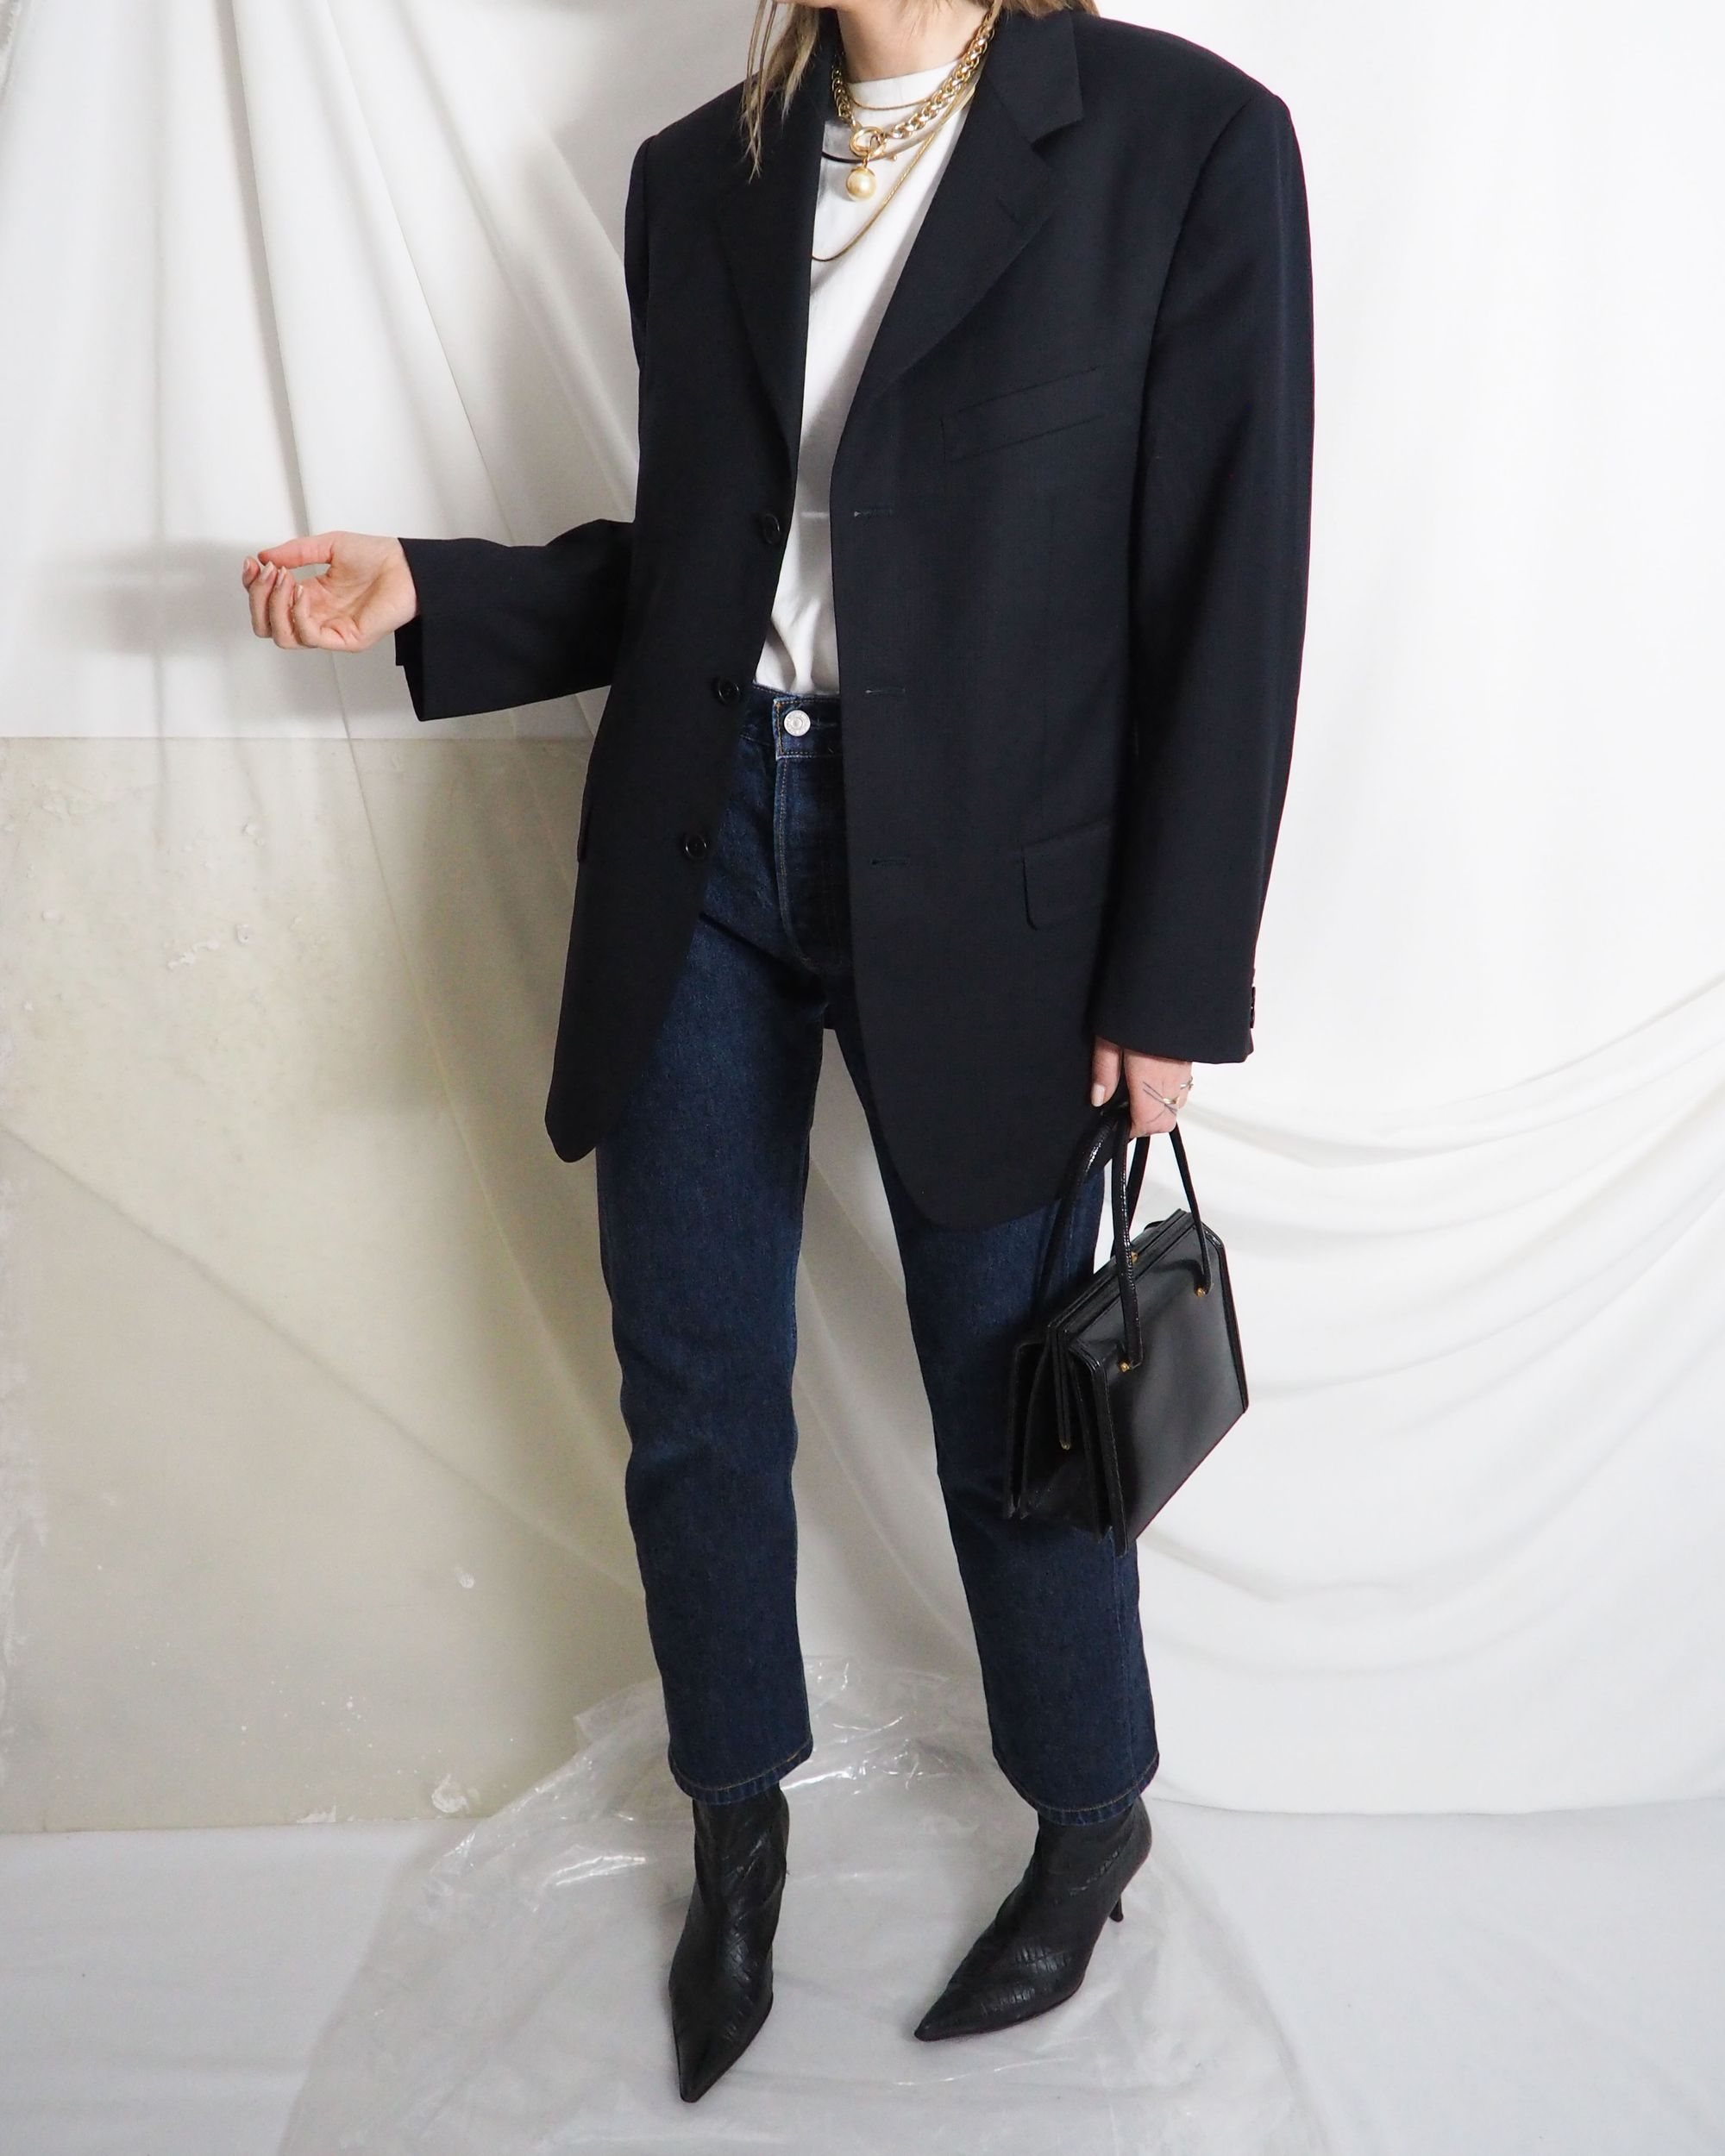 Vintage Levi S 501 With Midnight Navy Blue Blazer Leather Purse And White Tee Untitled 1991 In 2020 Vintage Outfits Vintage Clothing Online Online Shopping Clothes